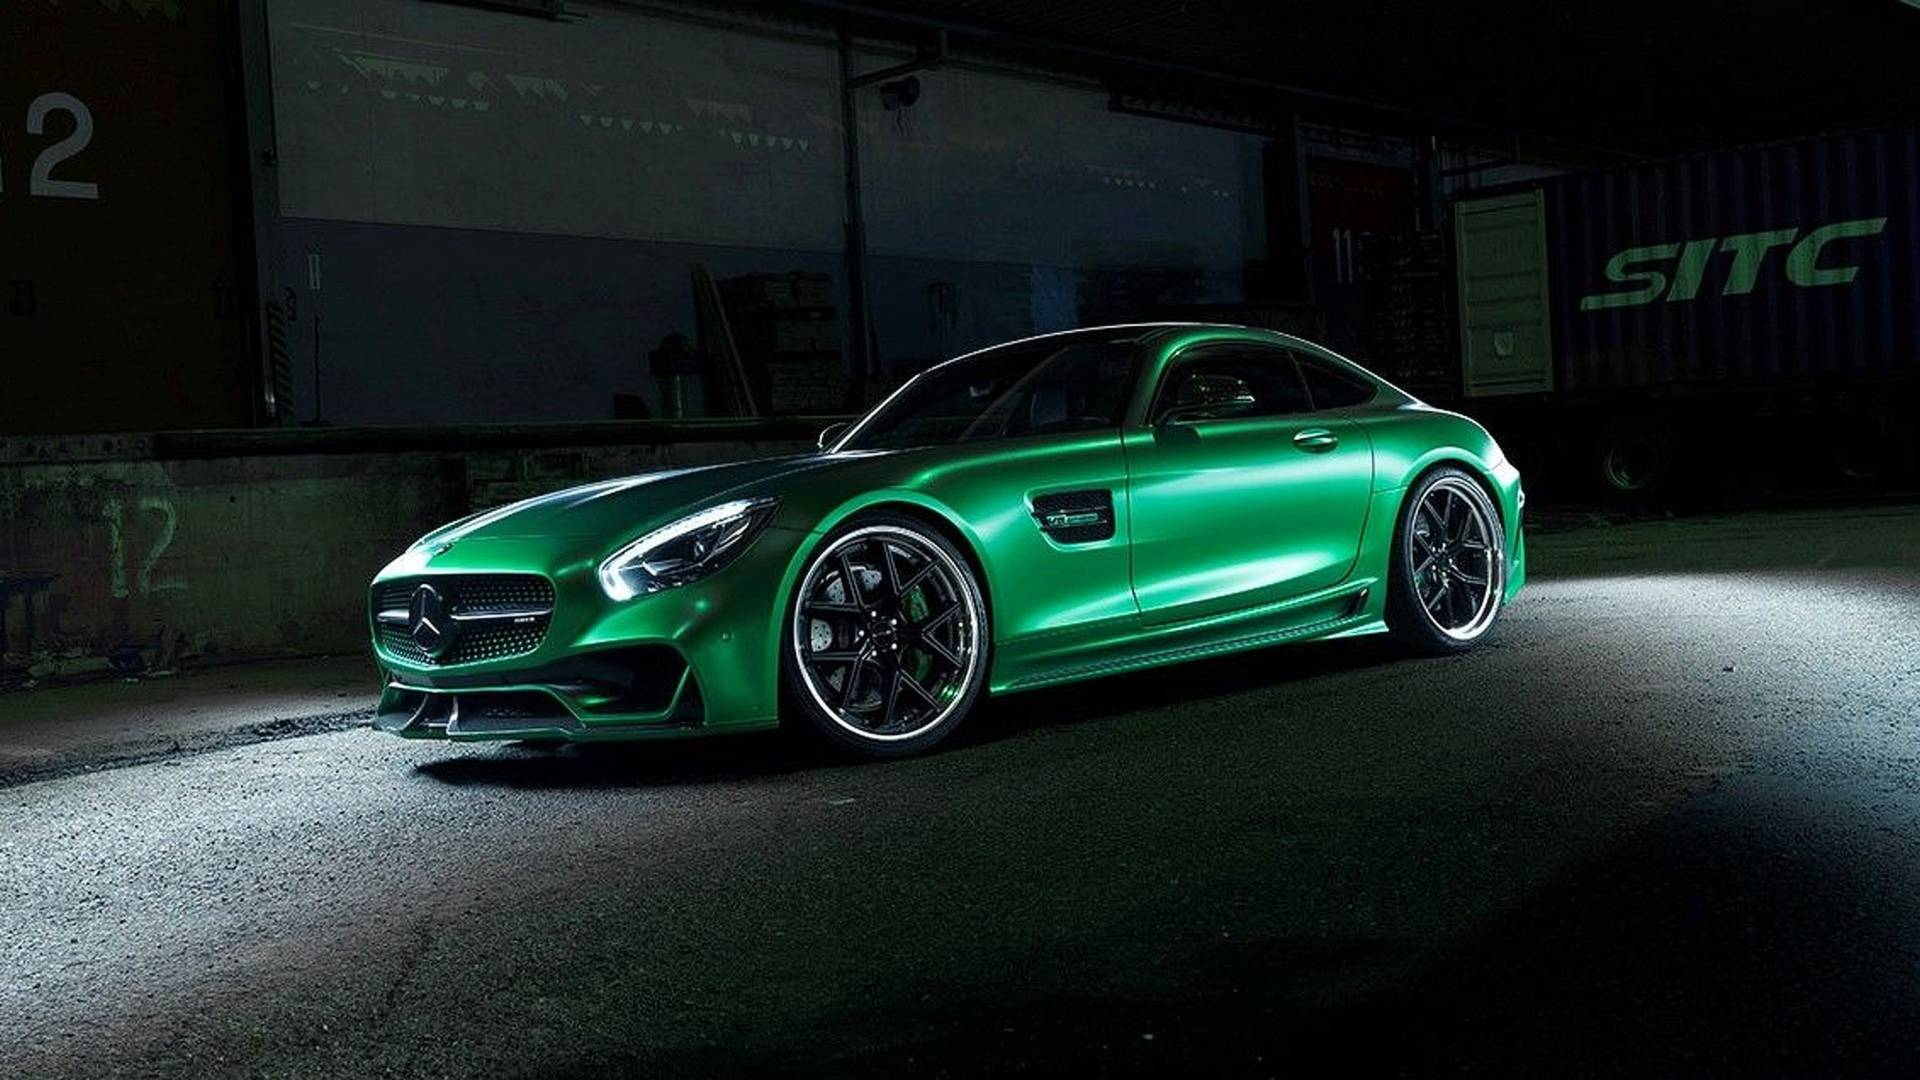 Japanese car design atelier Wald International has revealed its take on the Mercedes-AMG GT sport car